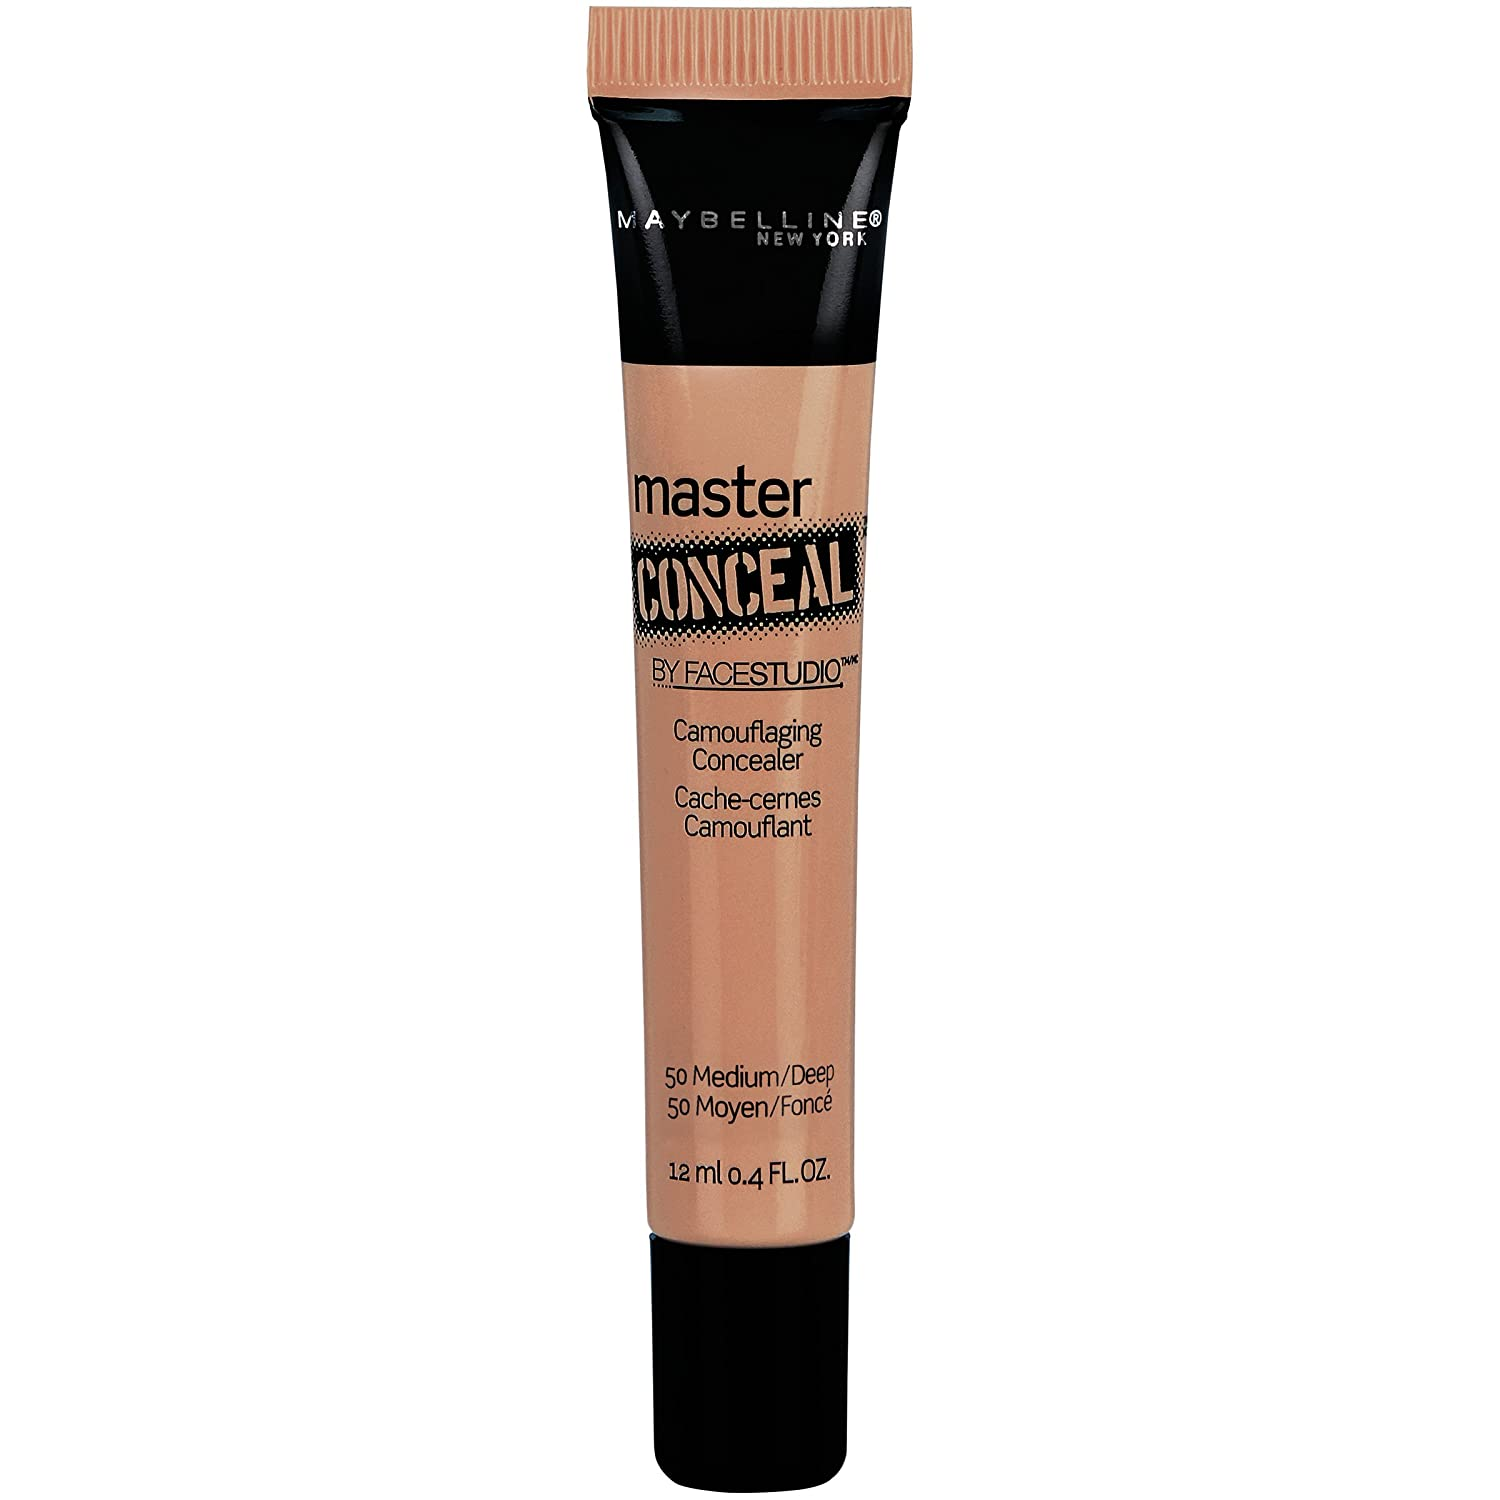 Maybelline New York Face Studio Master Conceal Makeup, Medium/Deep, 0.4 Fluid Ounce, 1 Count K1819700